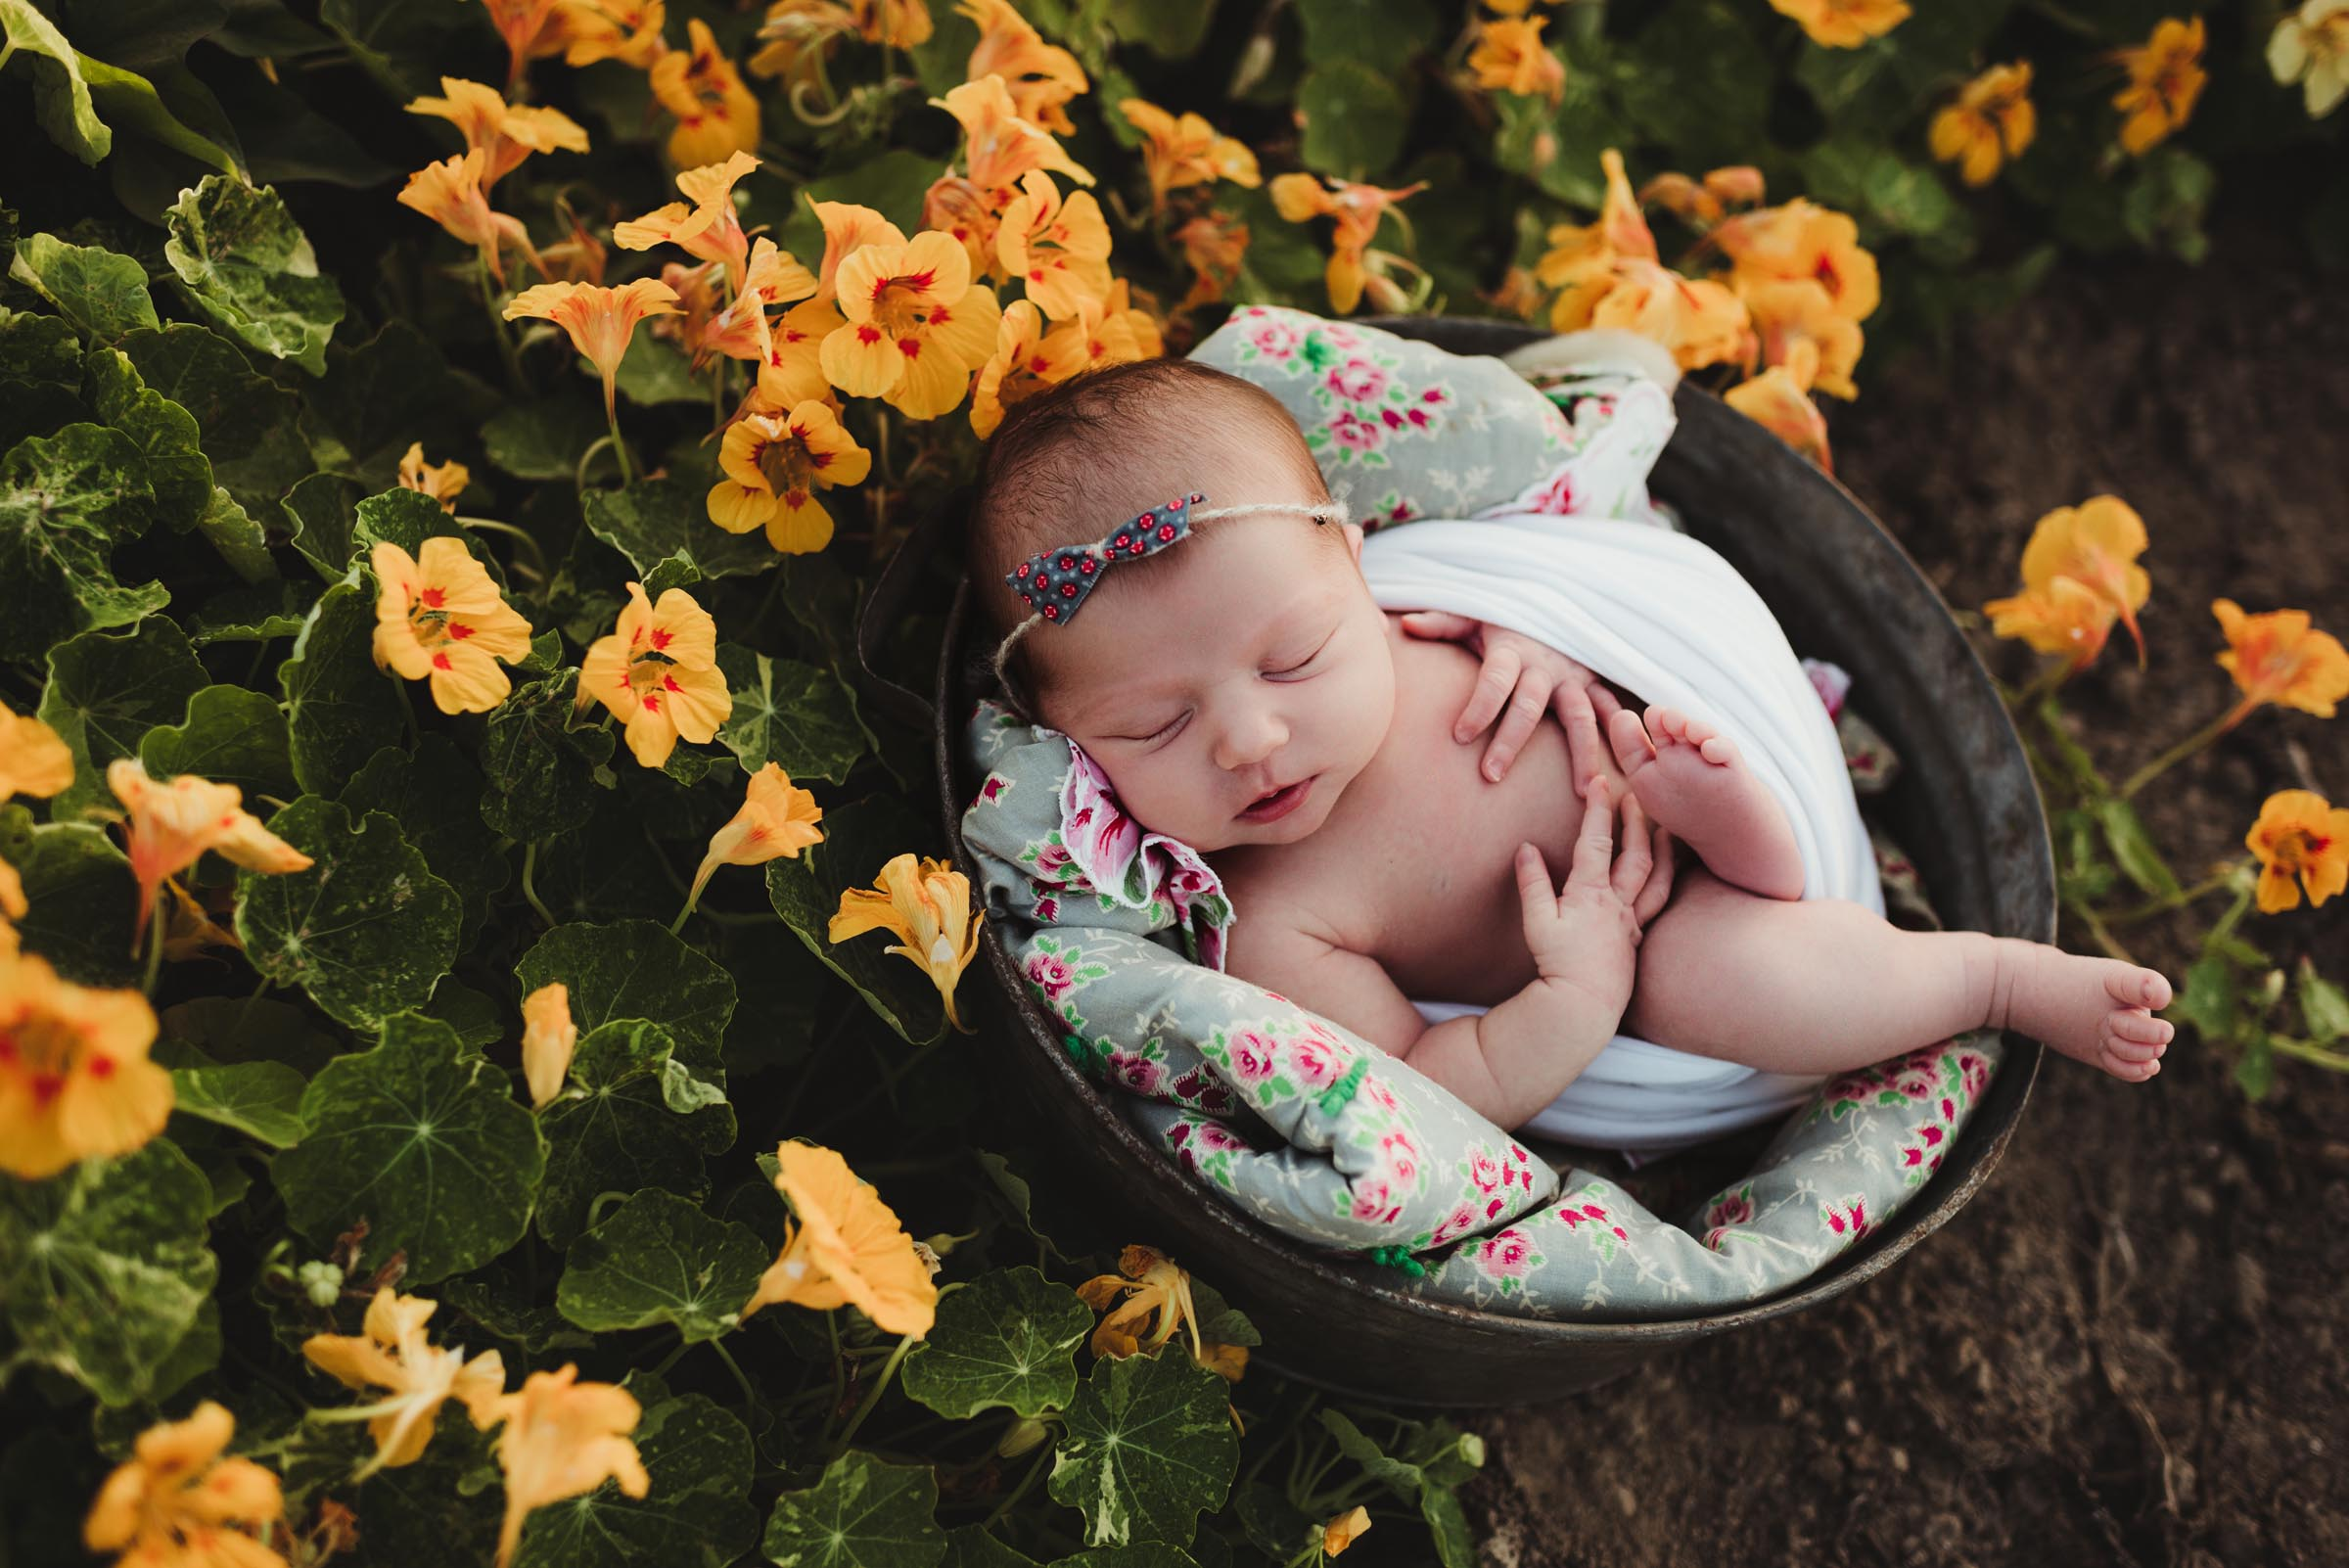 loose baby pose outdoor by yellow flowers